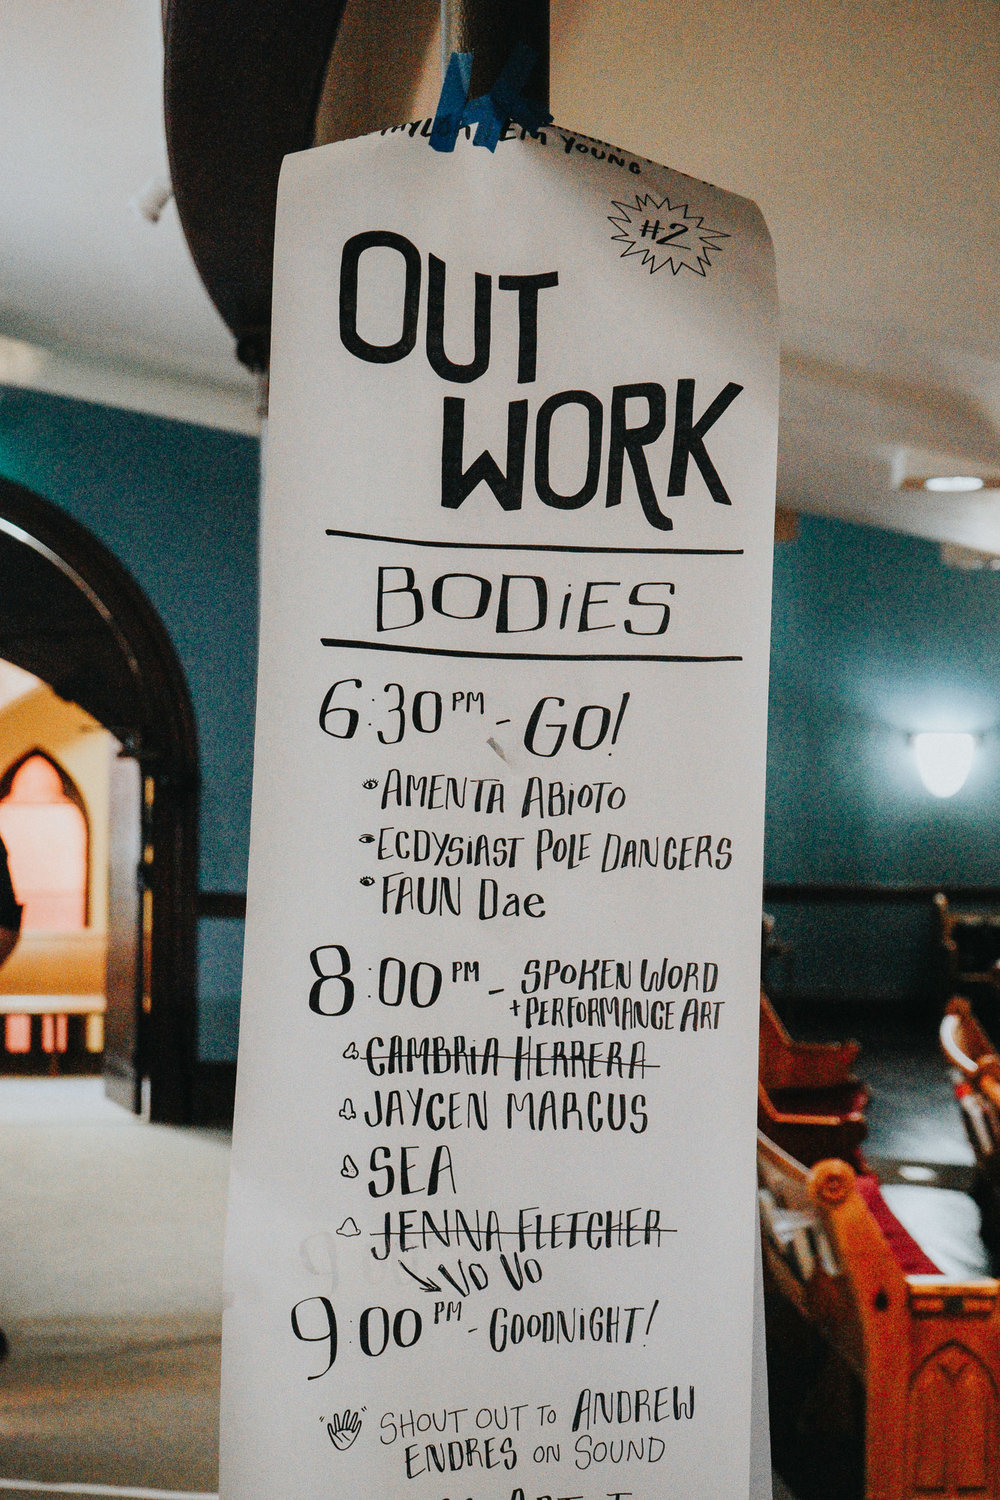 Outwork Bodies - Rowan Bradley-0754.jpg